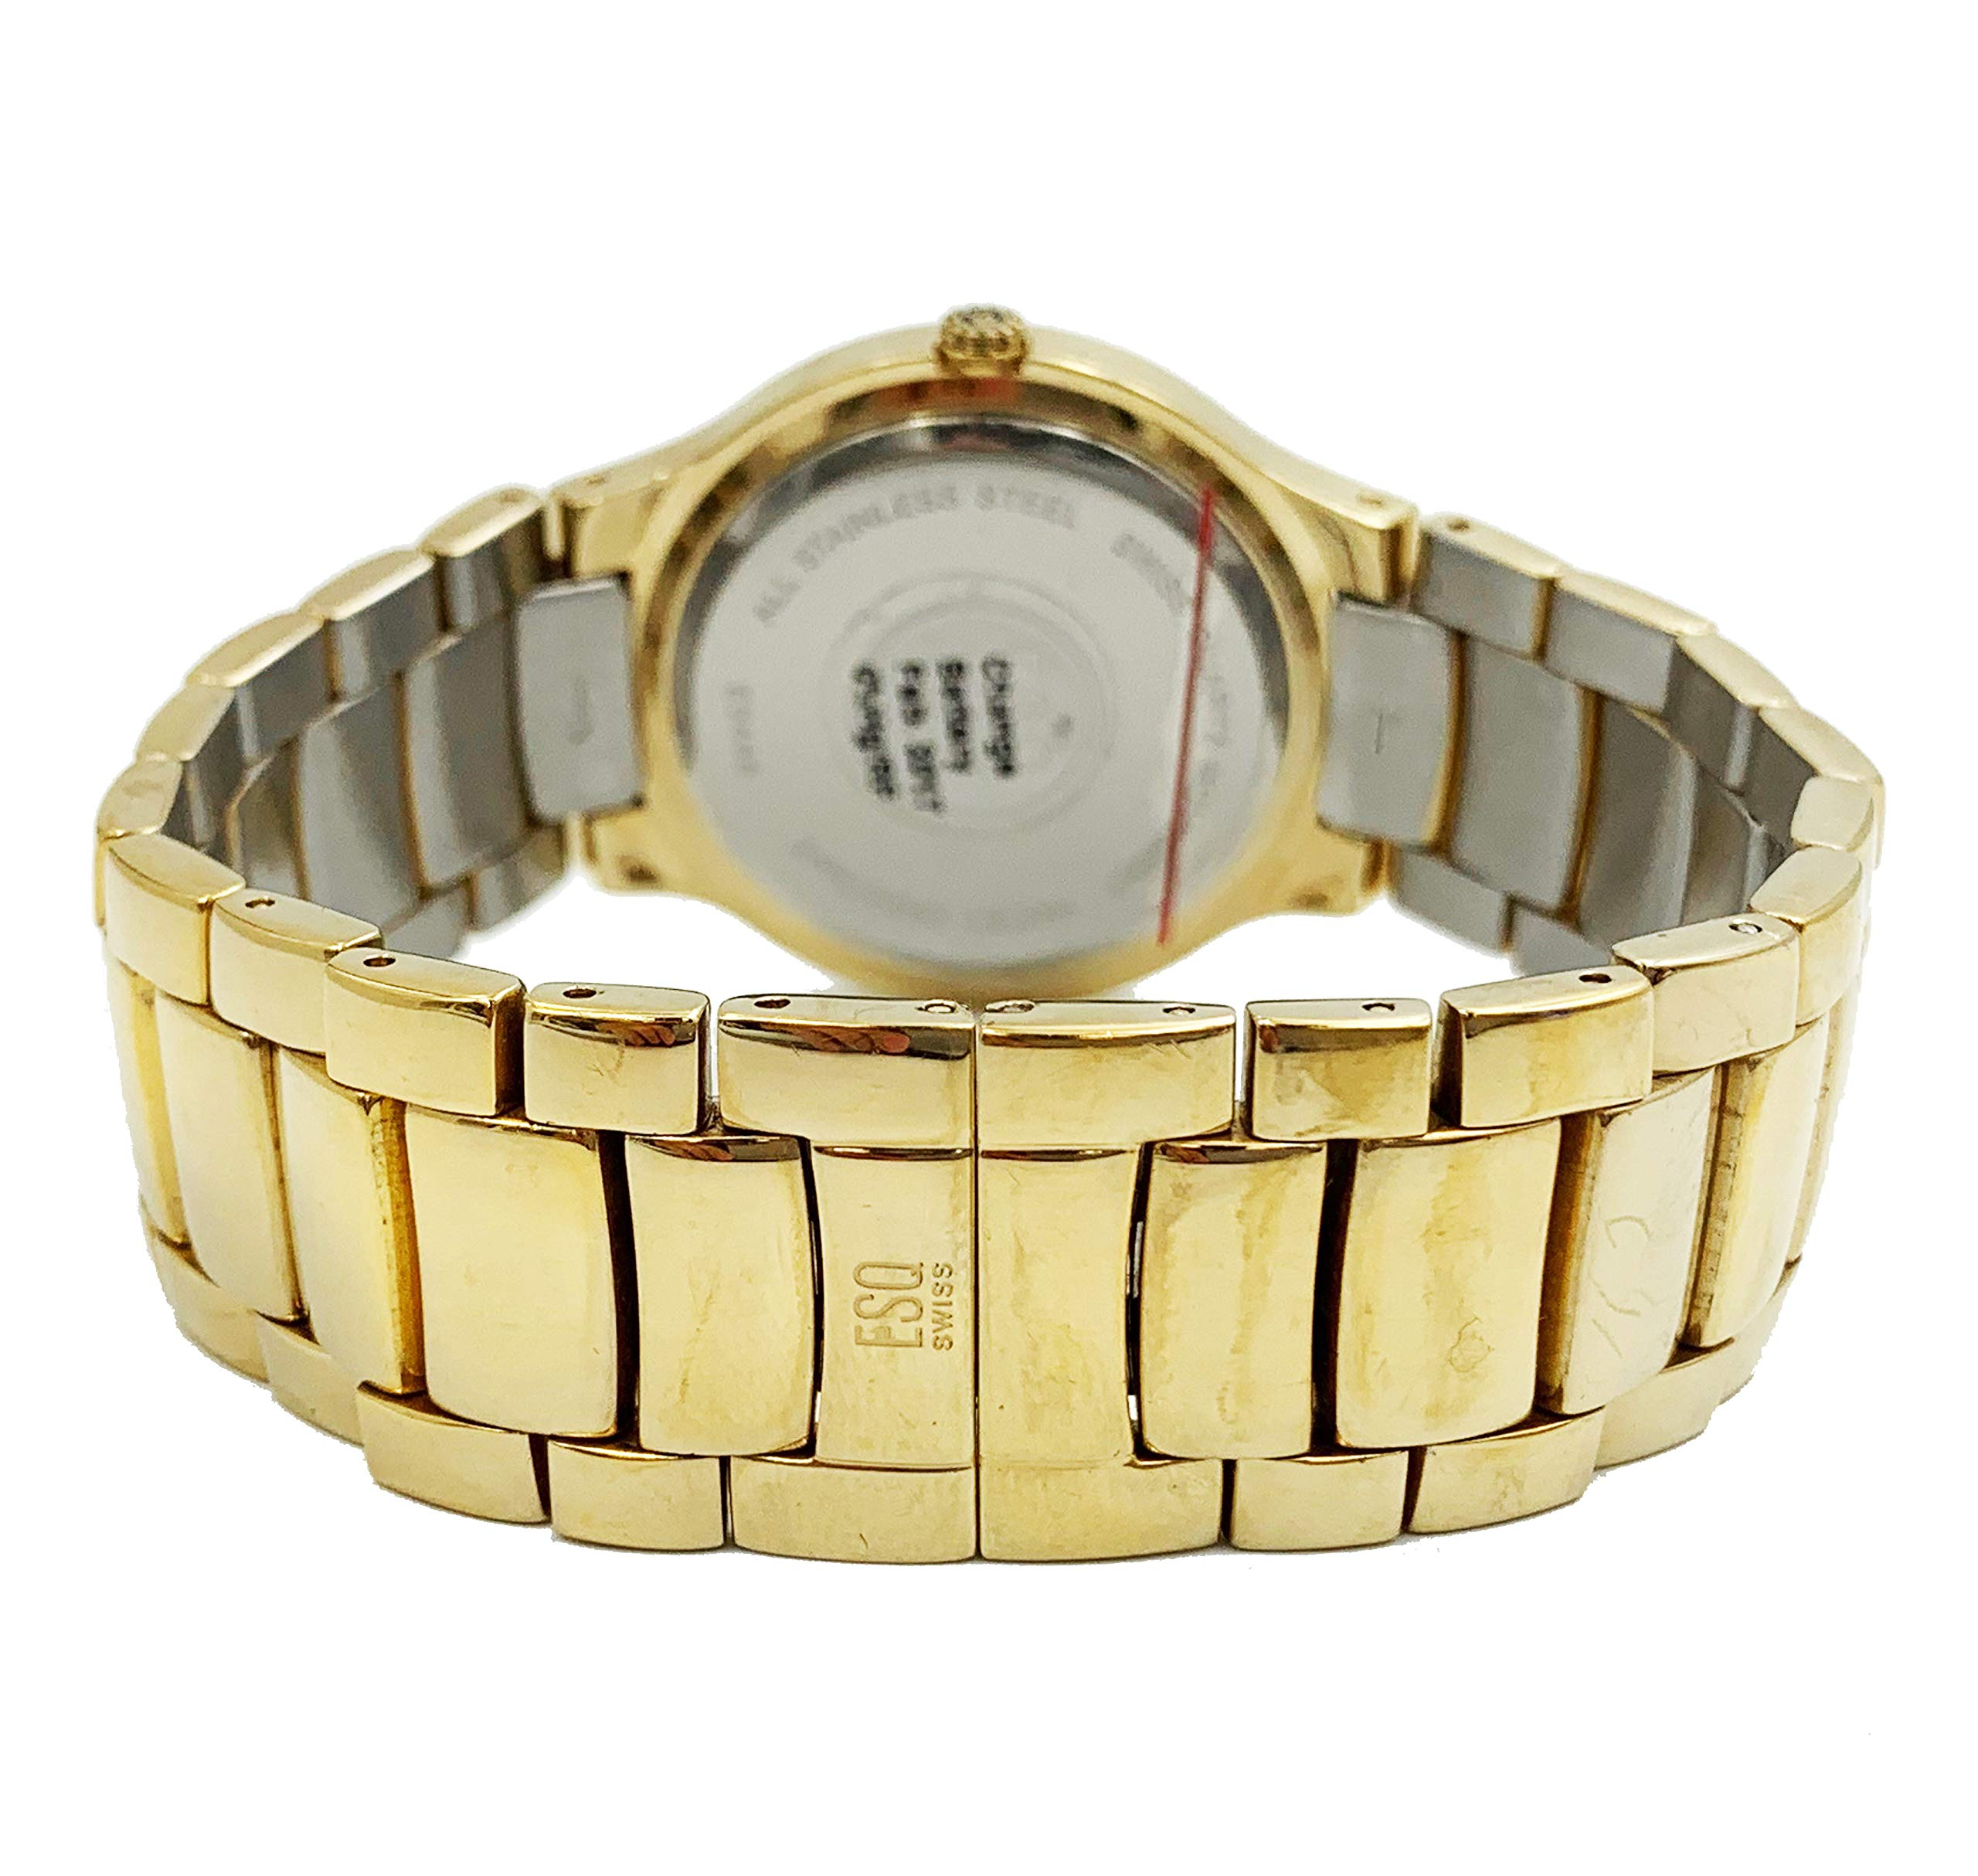 ESQ Verve Quartz Male Watch 07301190 (Certified Pre-Owned) by ESQ (Image #2)